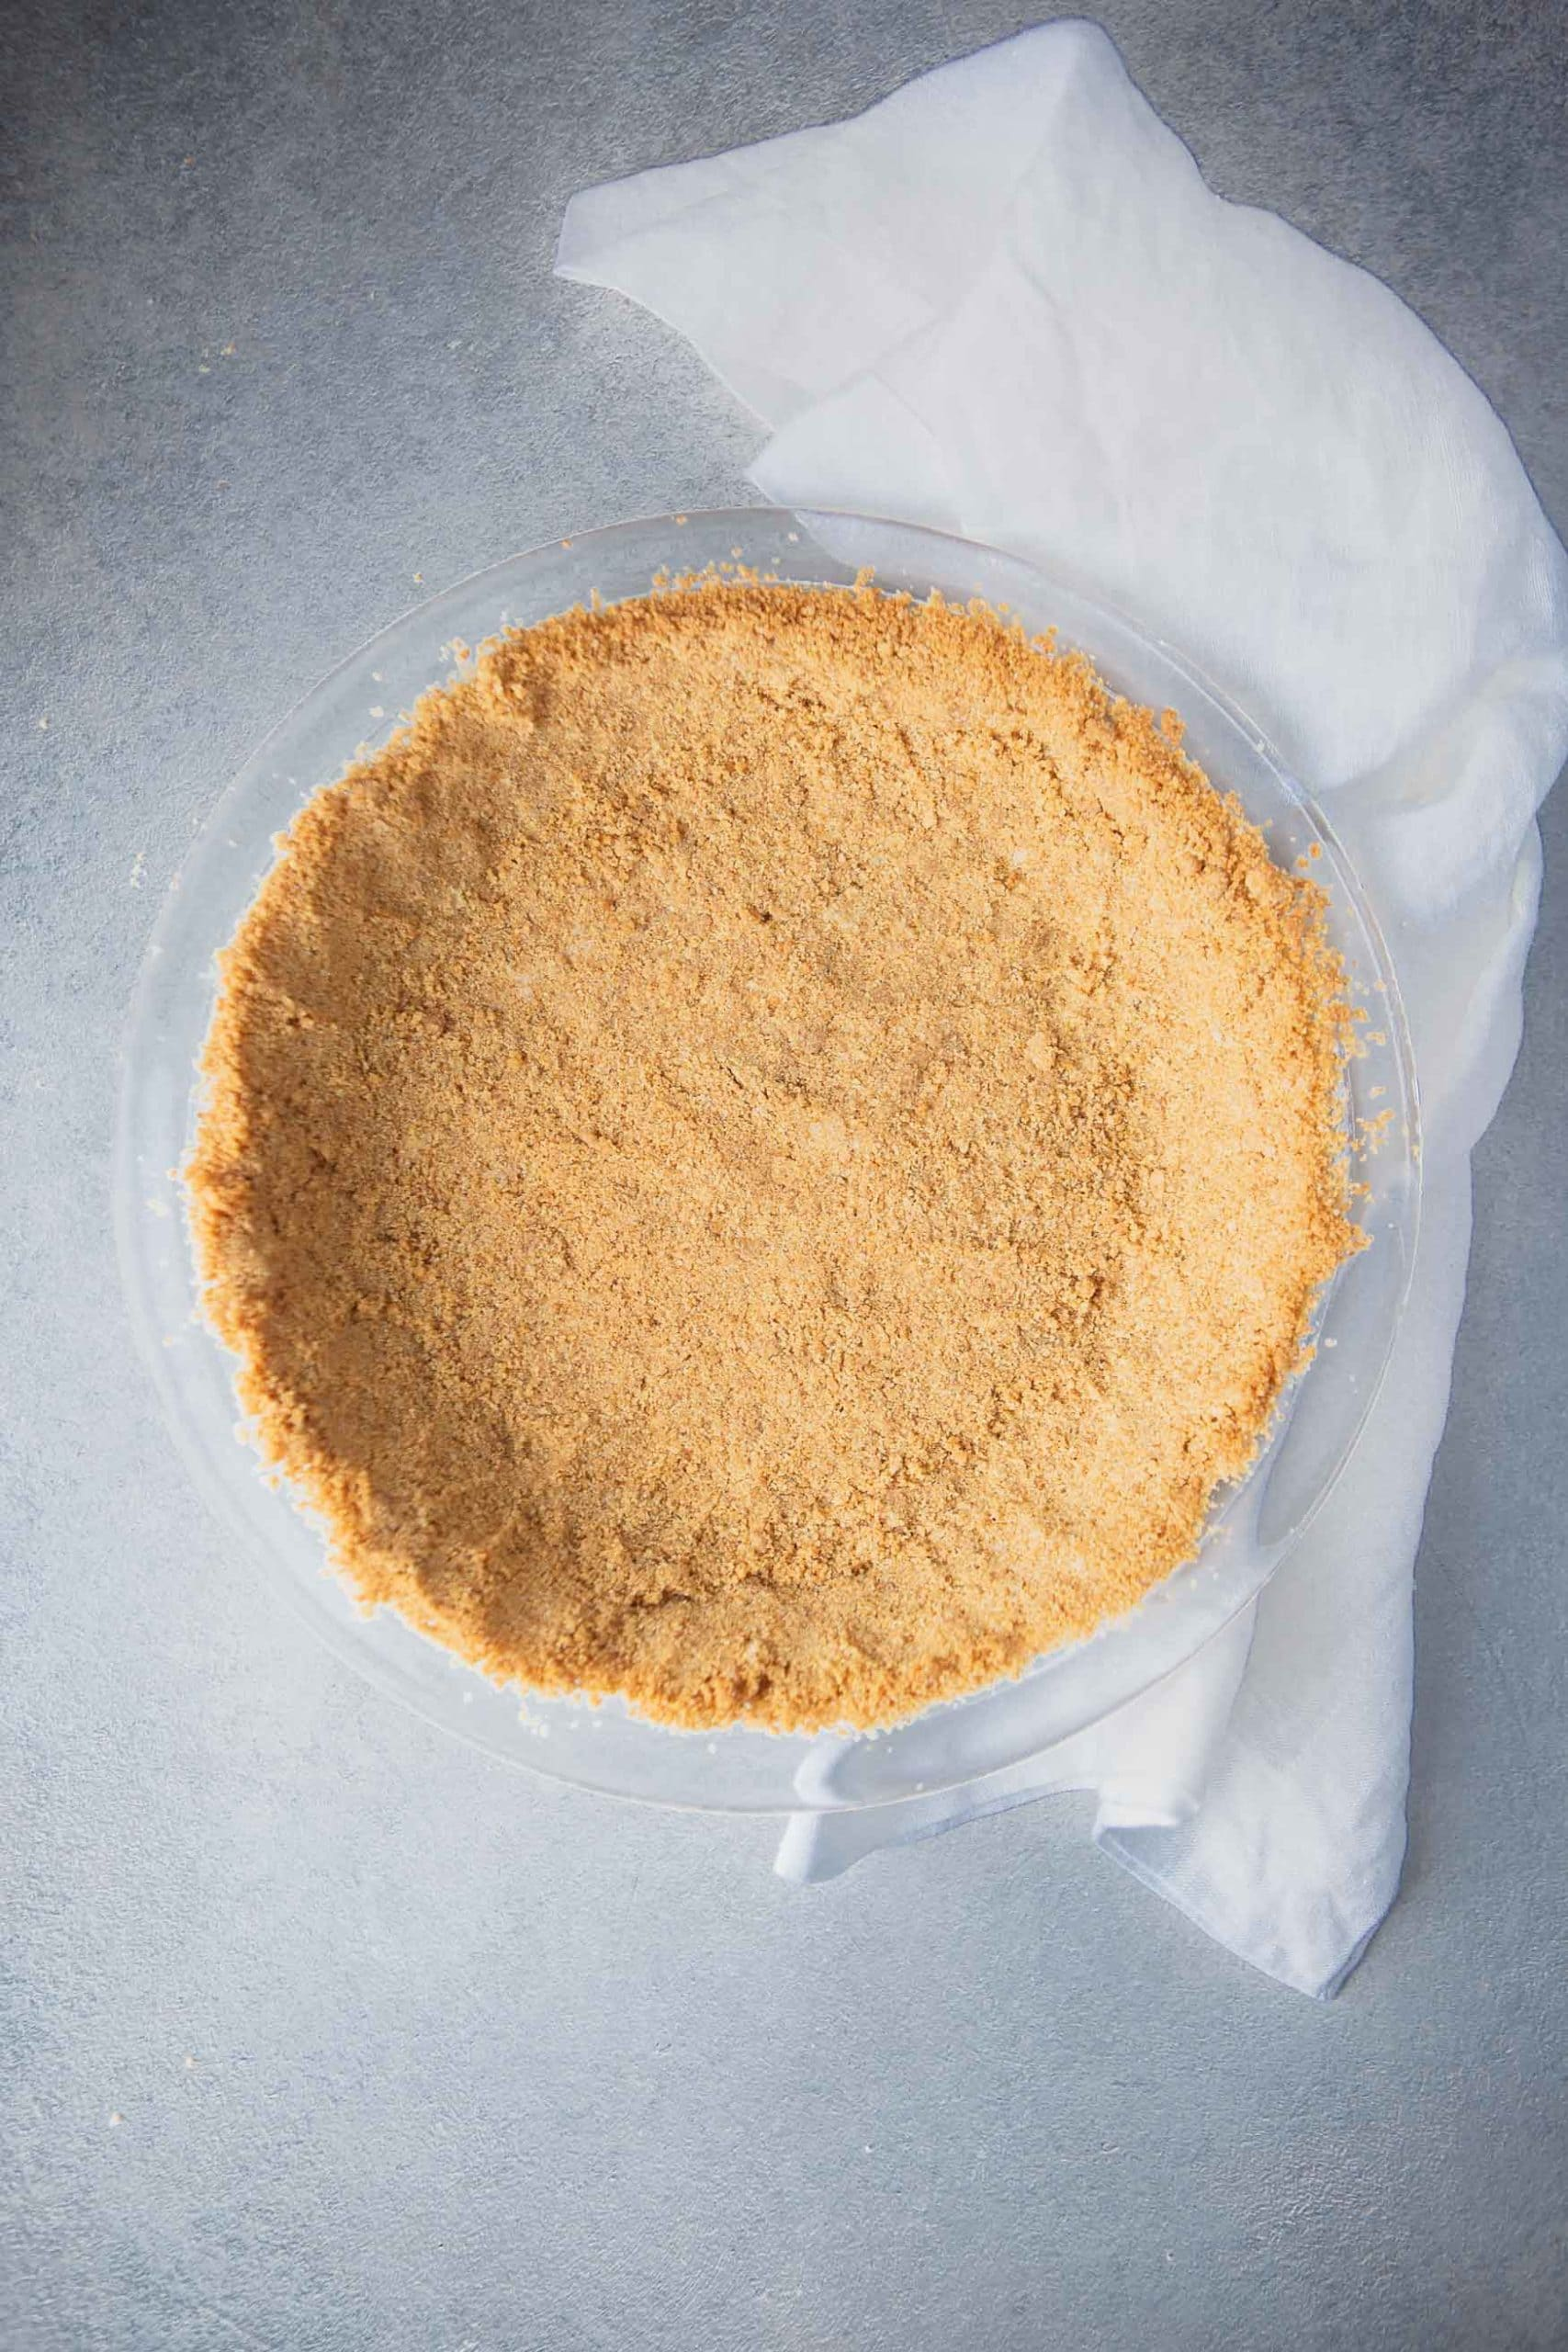 Graham cracker crust that has been pressed into a pie dish and is ready to bake.